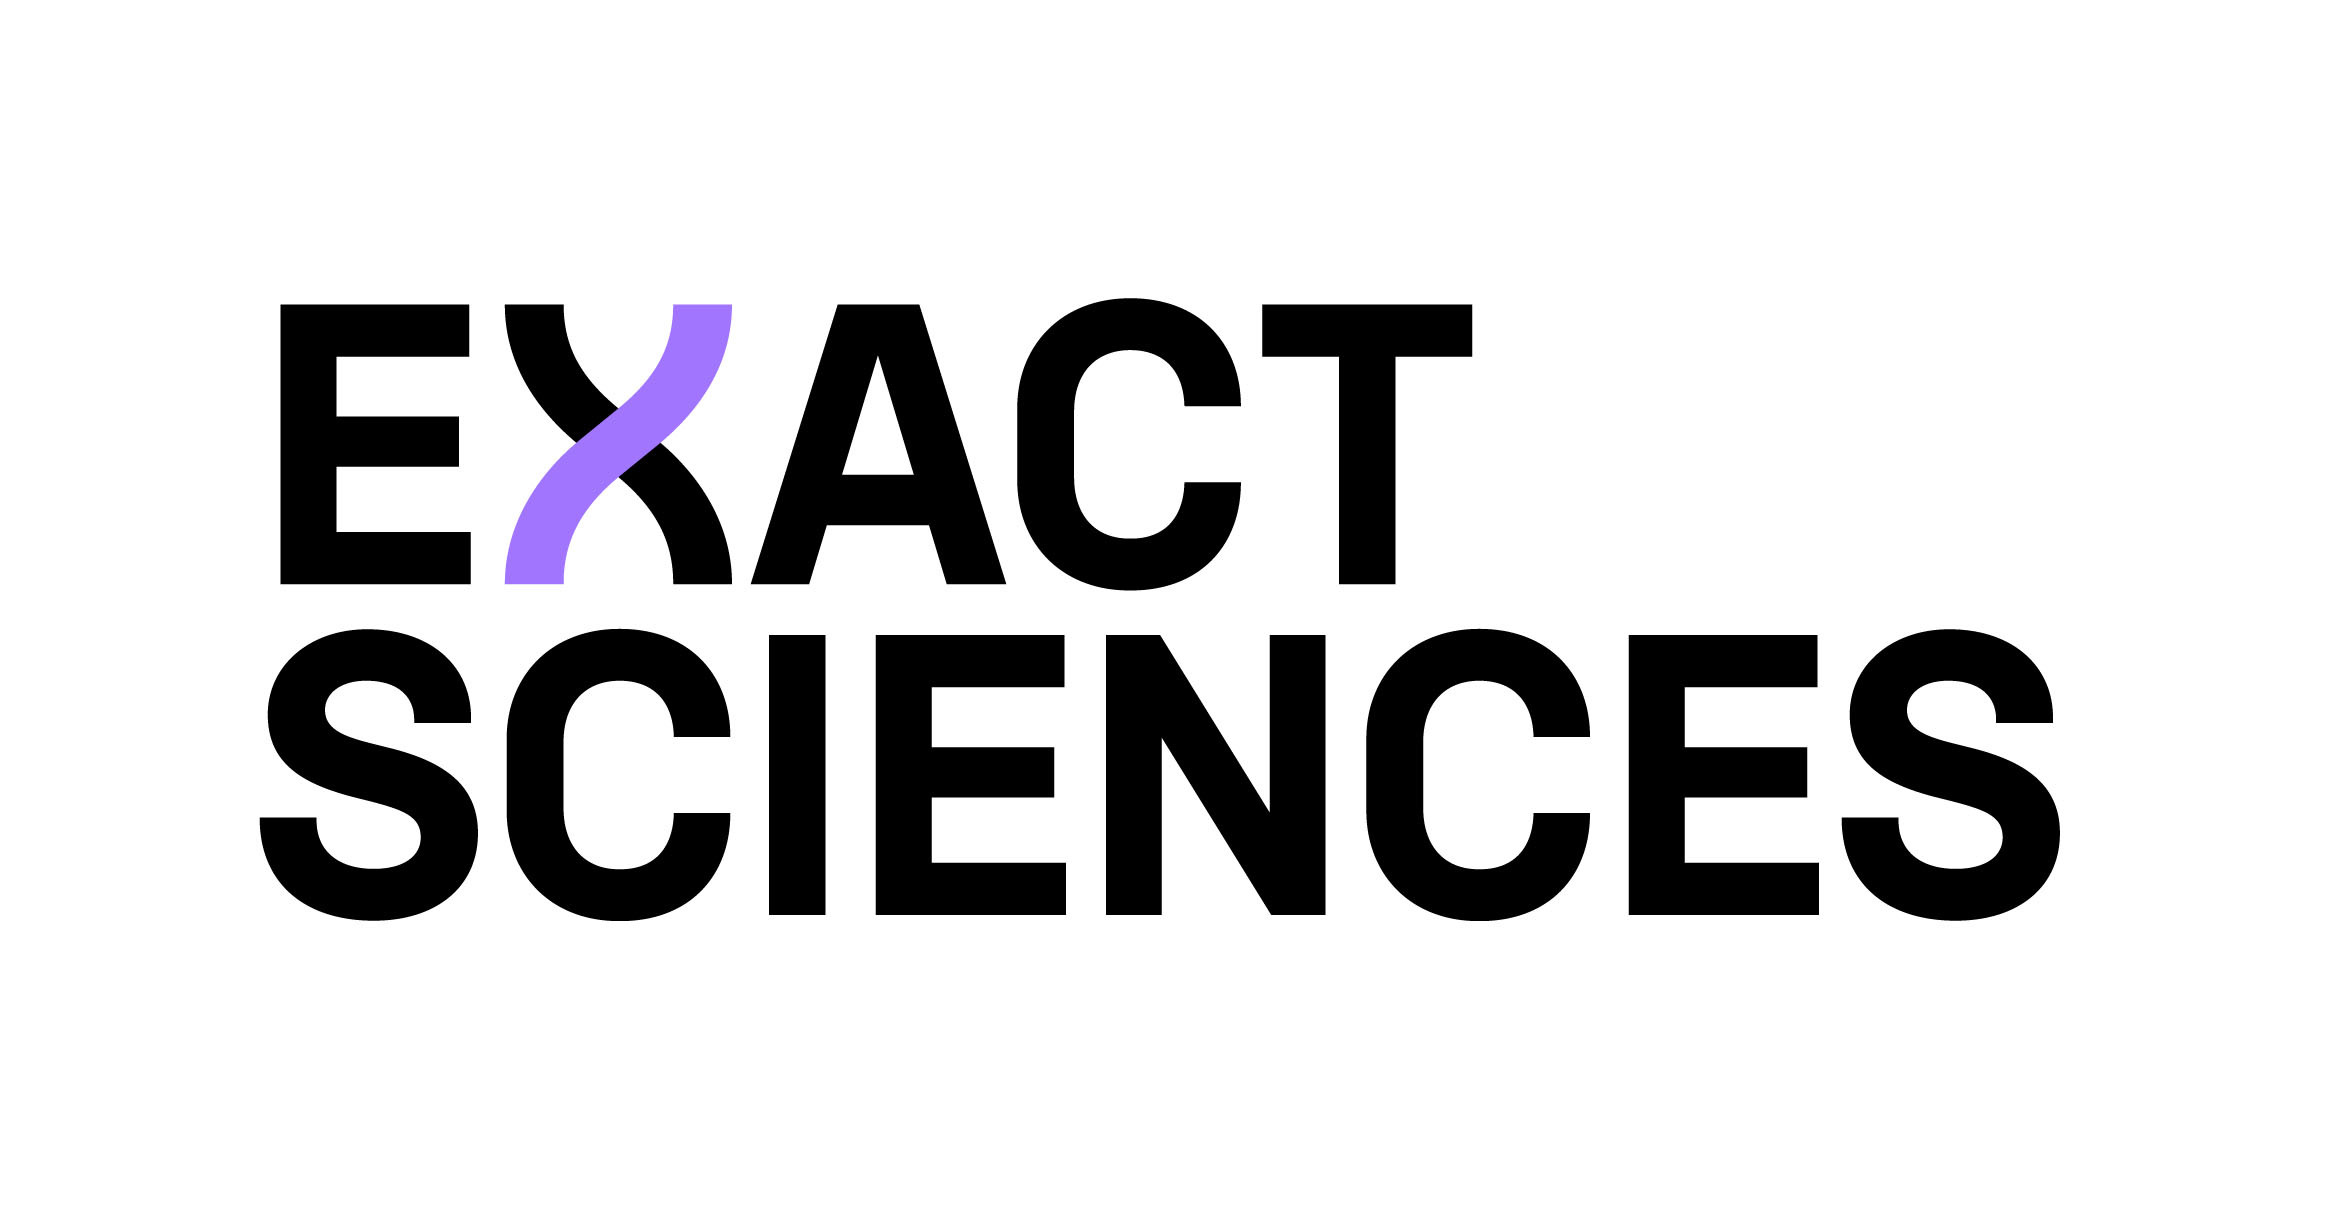 exact sciences cologuard growth prnewswire cancer